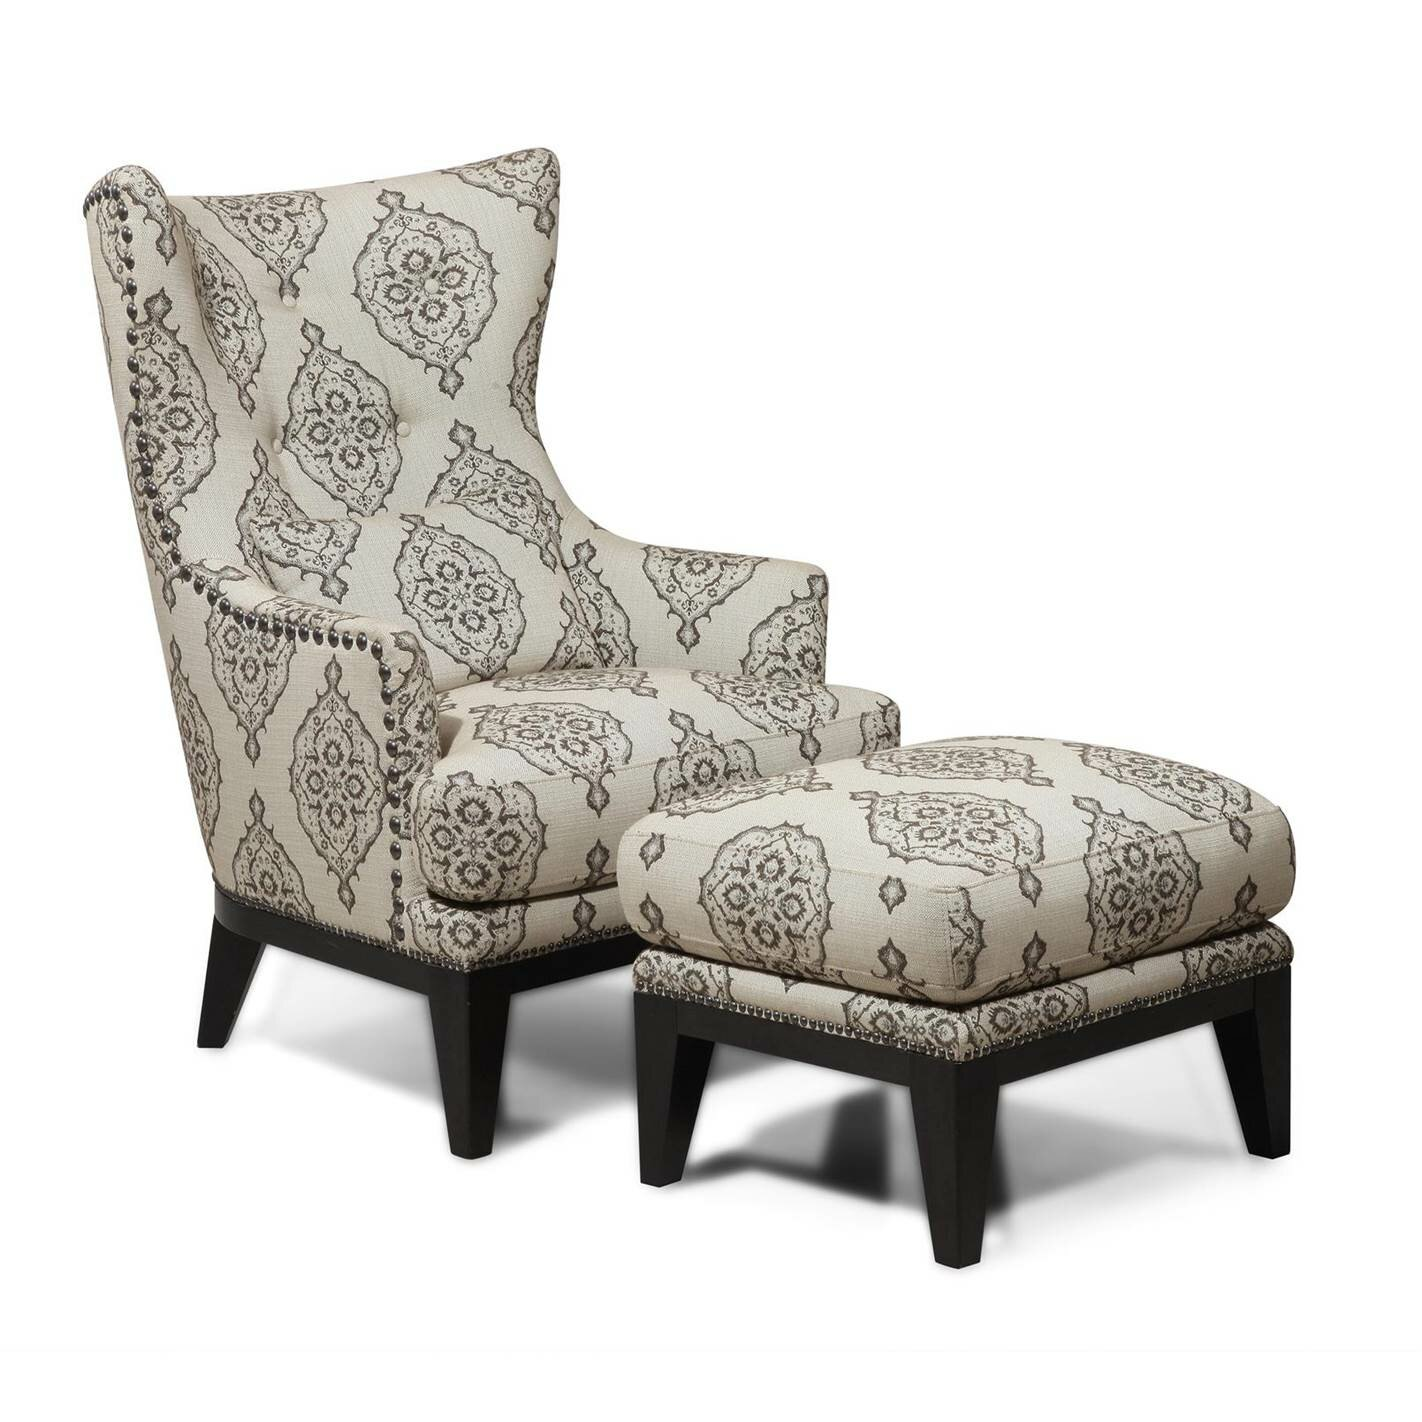 Wing chair with ottoman - Darby Home Co Reg Baltic Wingback Chair Amp Ottoman